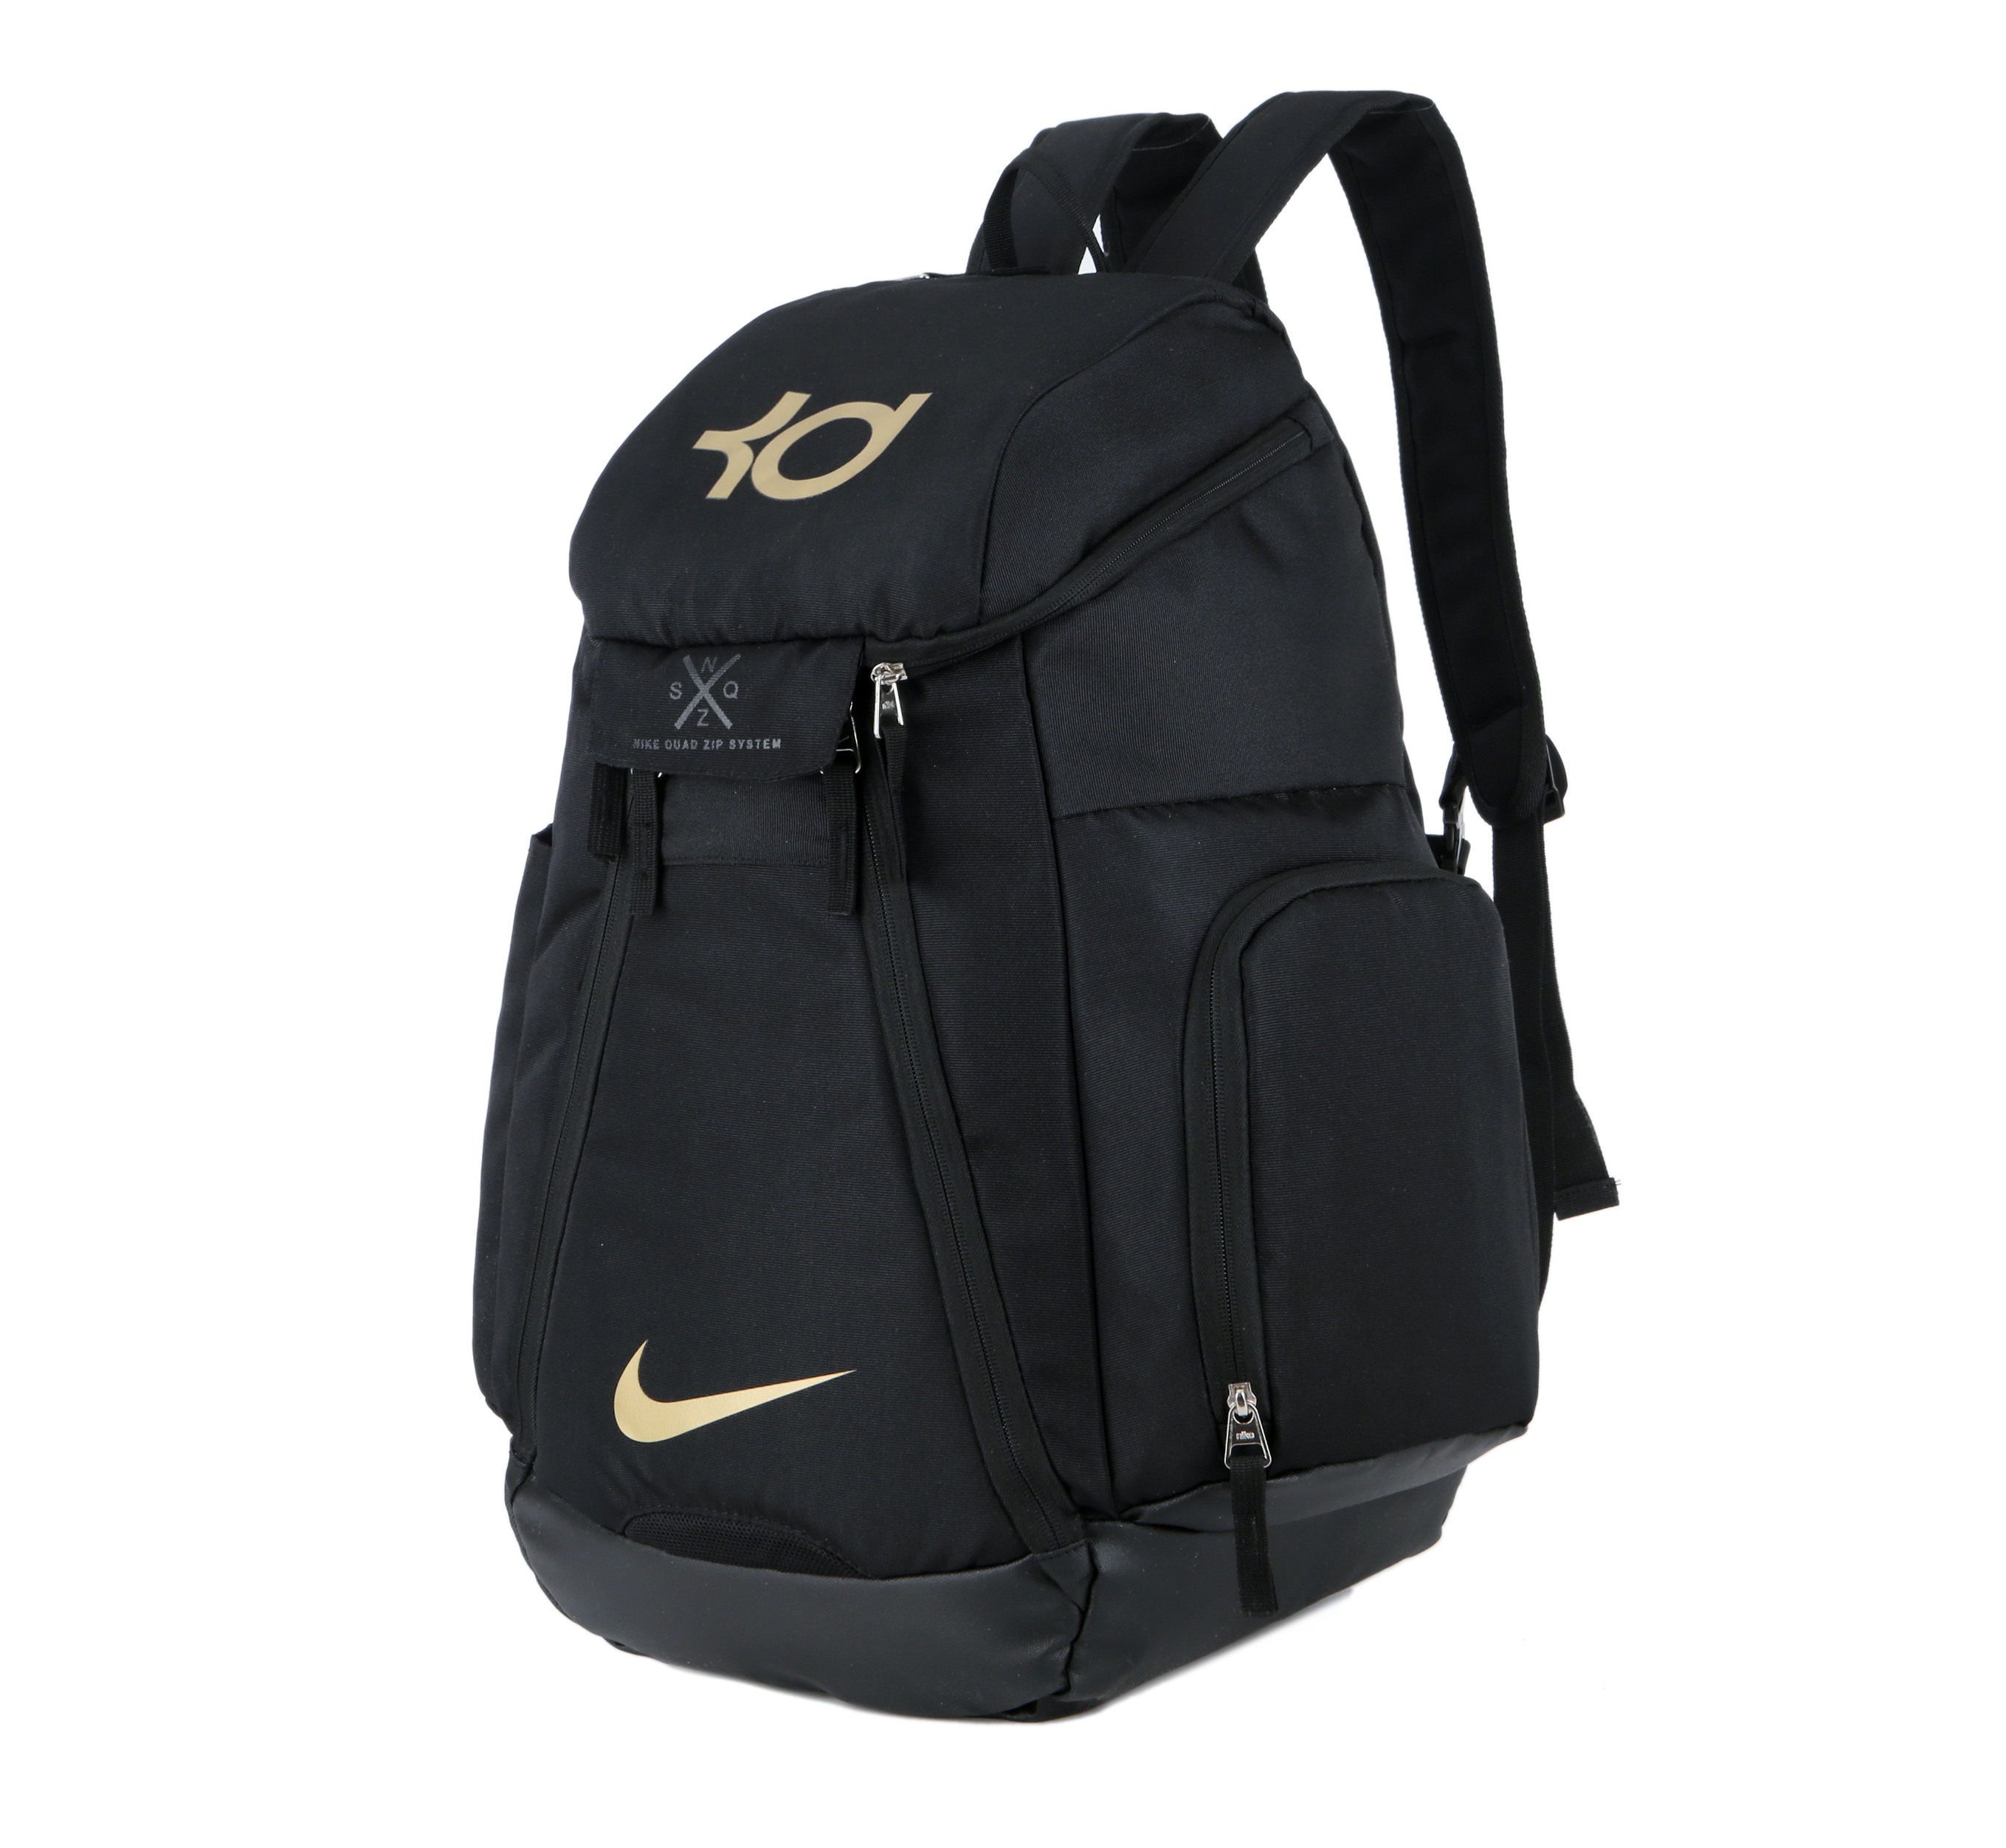 Nike KD Olympic Backpack Black Gold